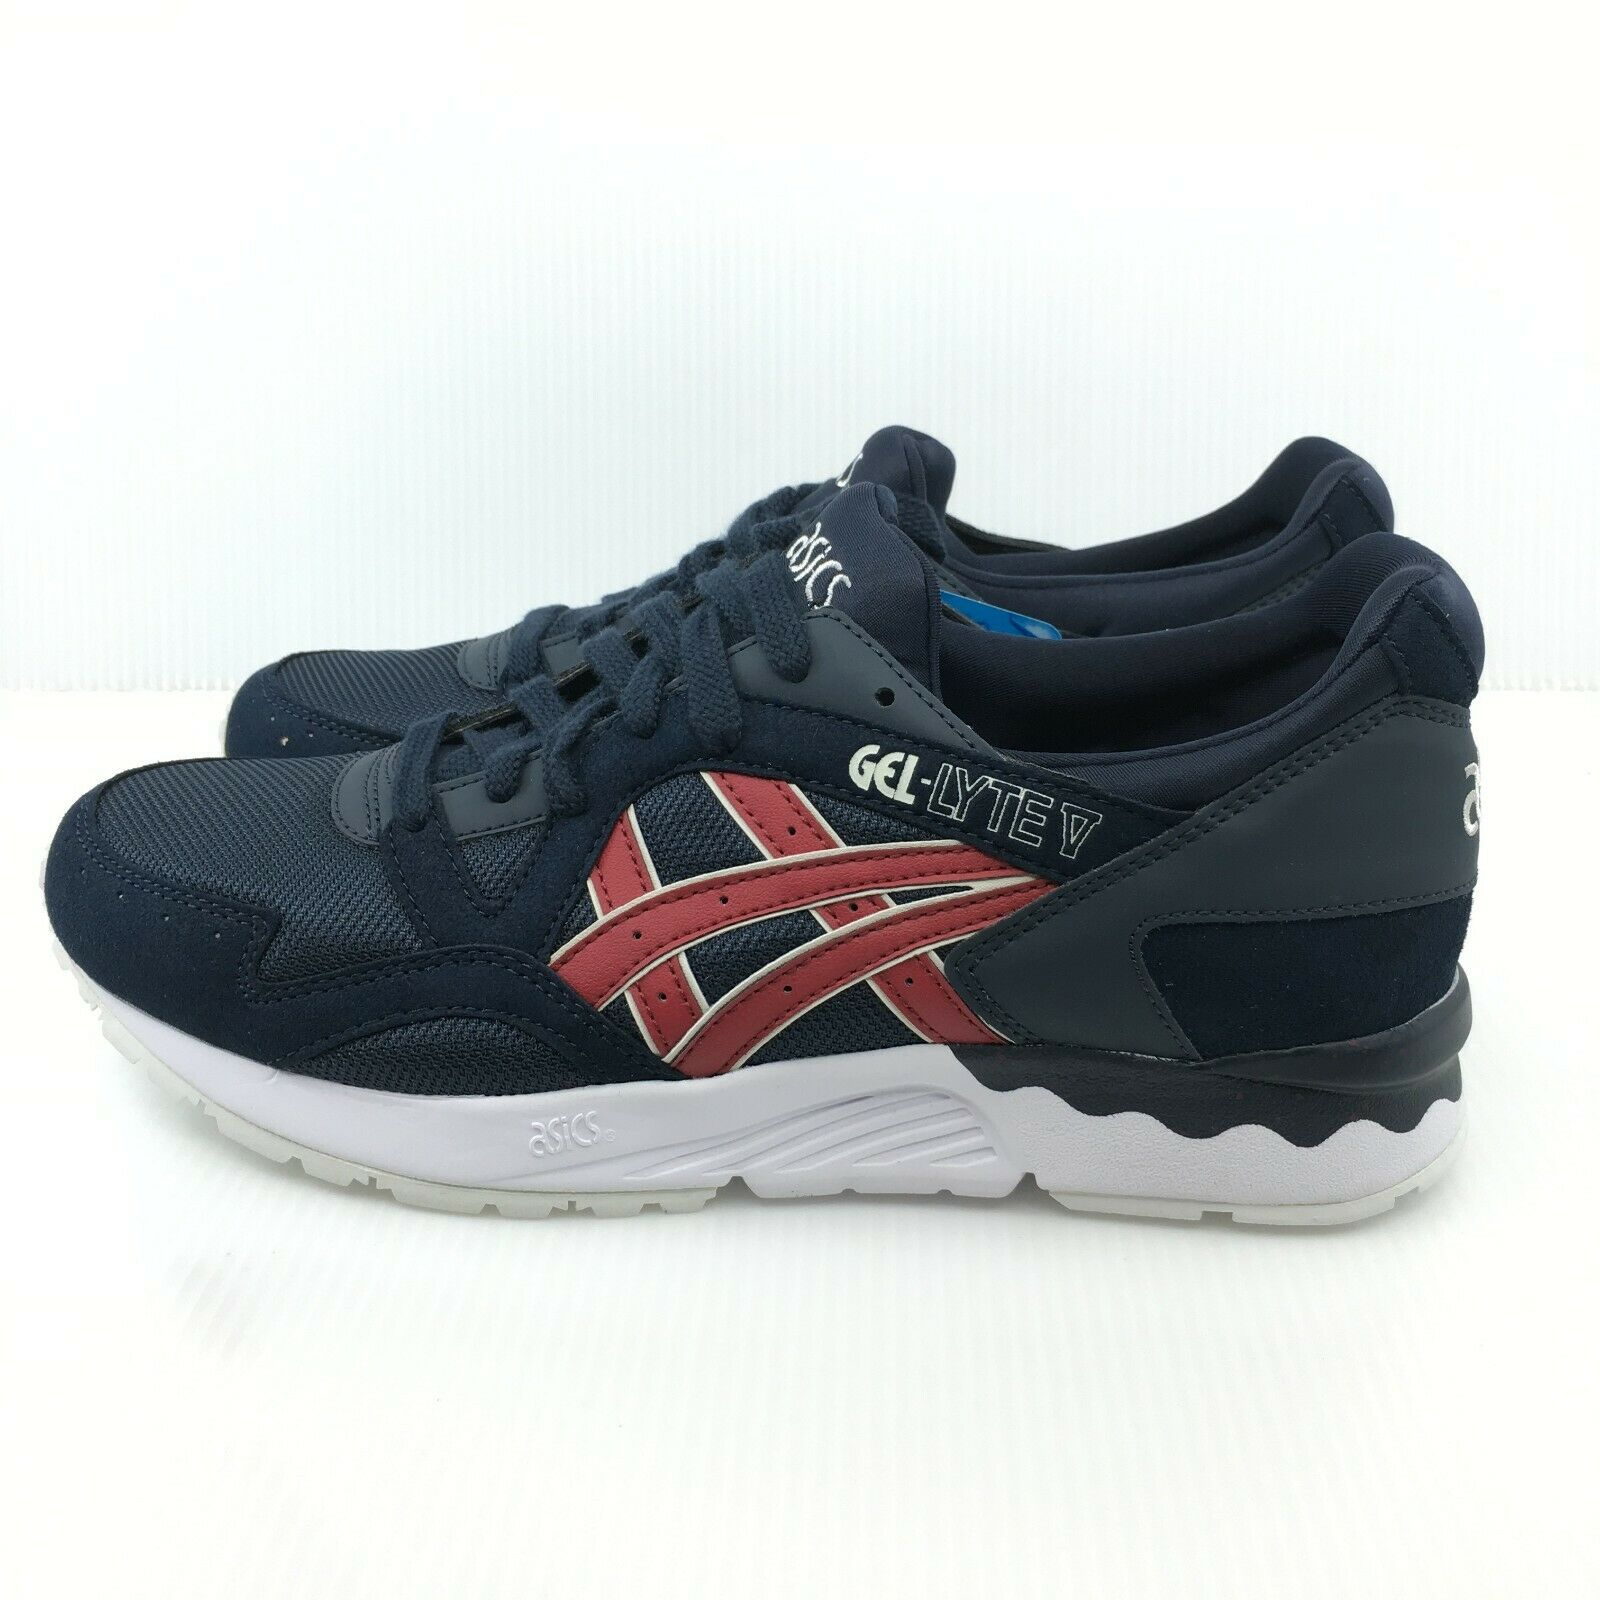 Asics Gel Lyte V 5 Indi Ink Navy bluee Burgundy White HN6A4-5026 Trainer Running